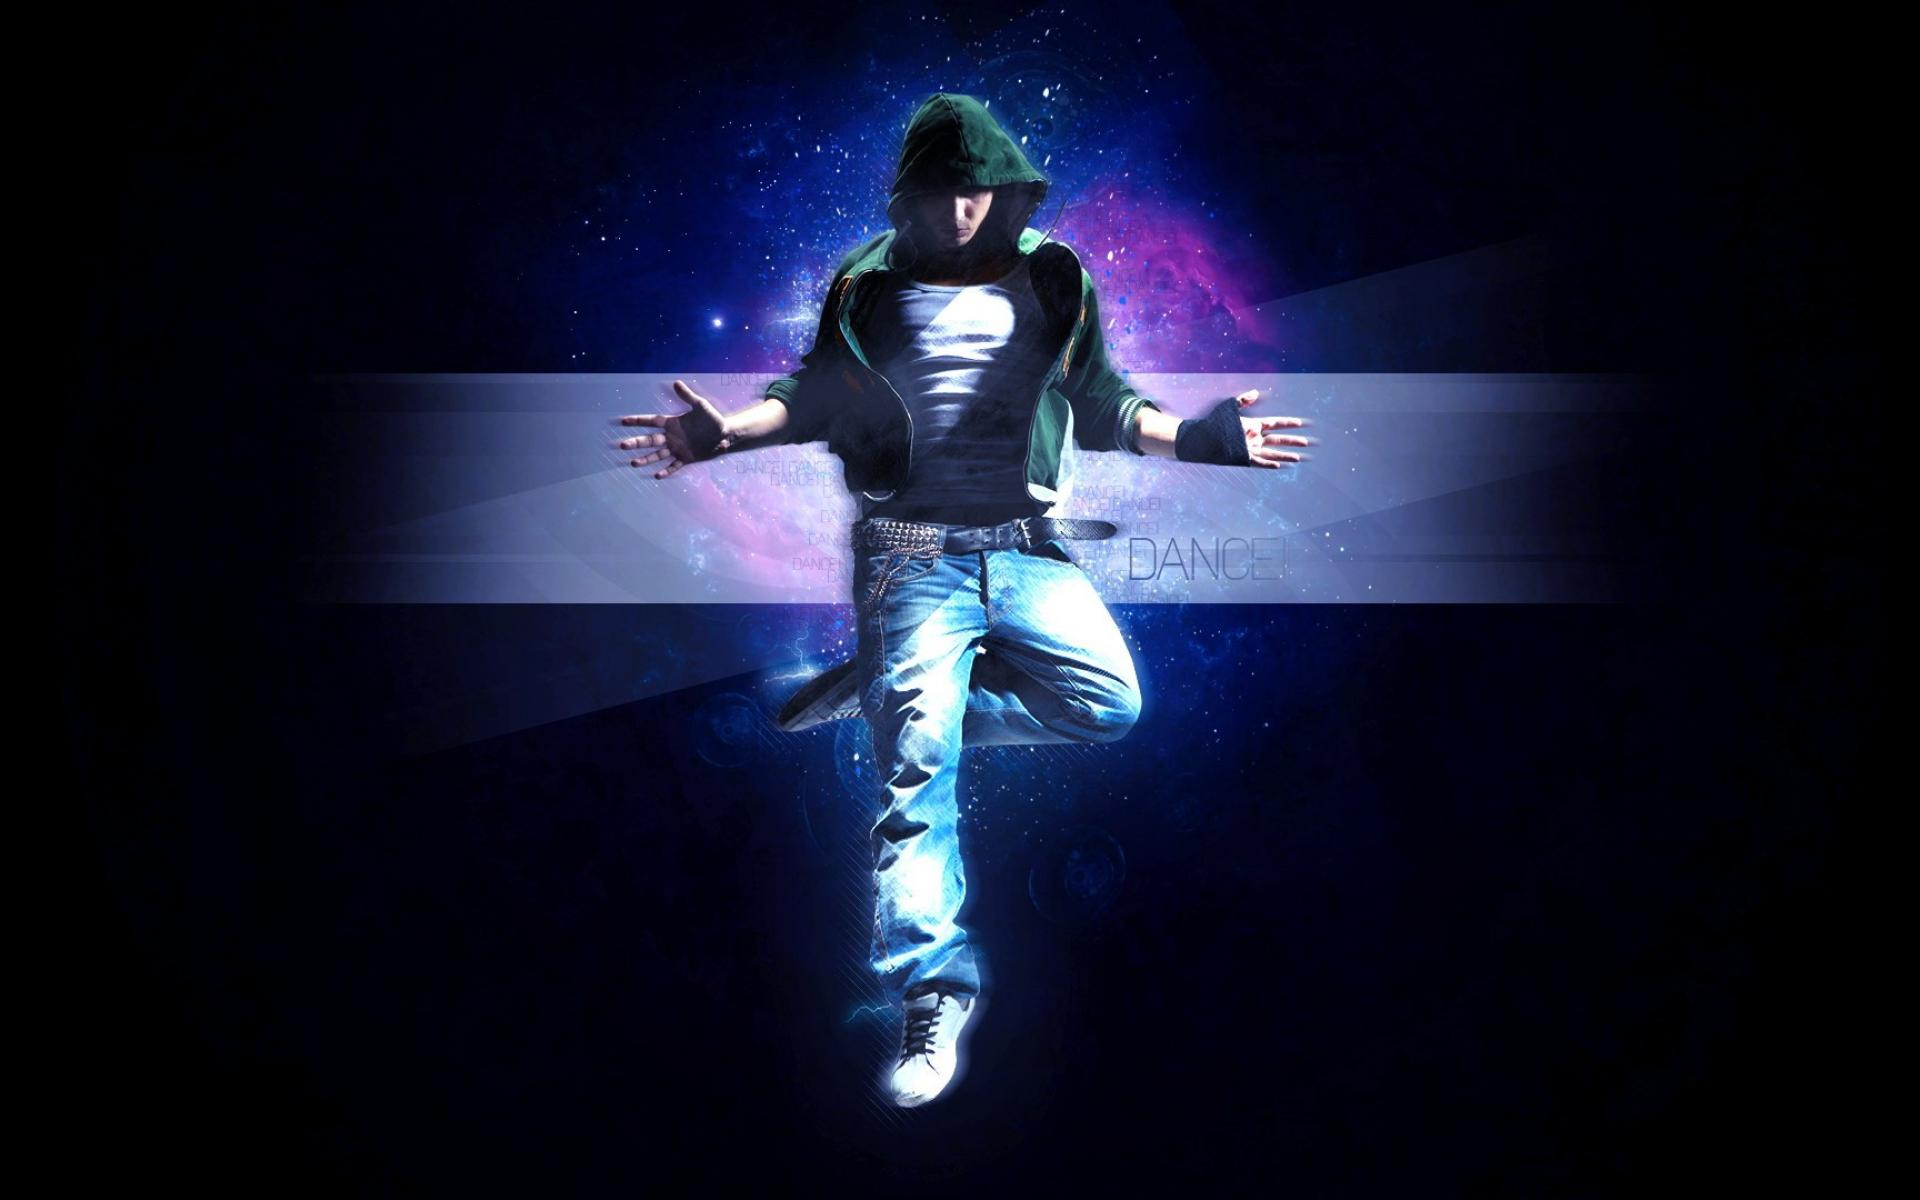 Dance Music Hoody 119263 With Resolutions 19201200 Pixel 1920x1200